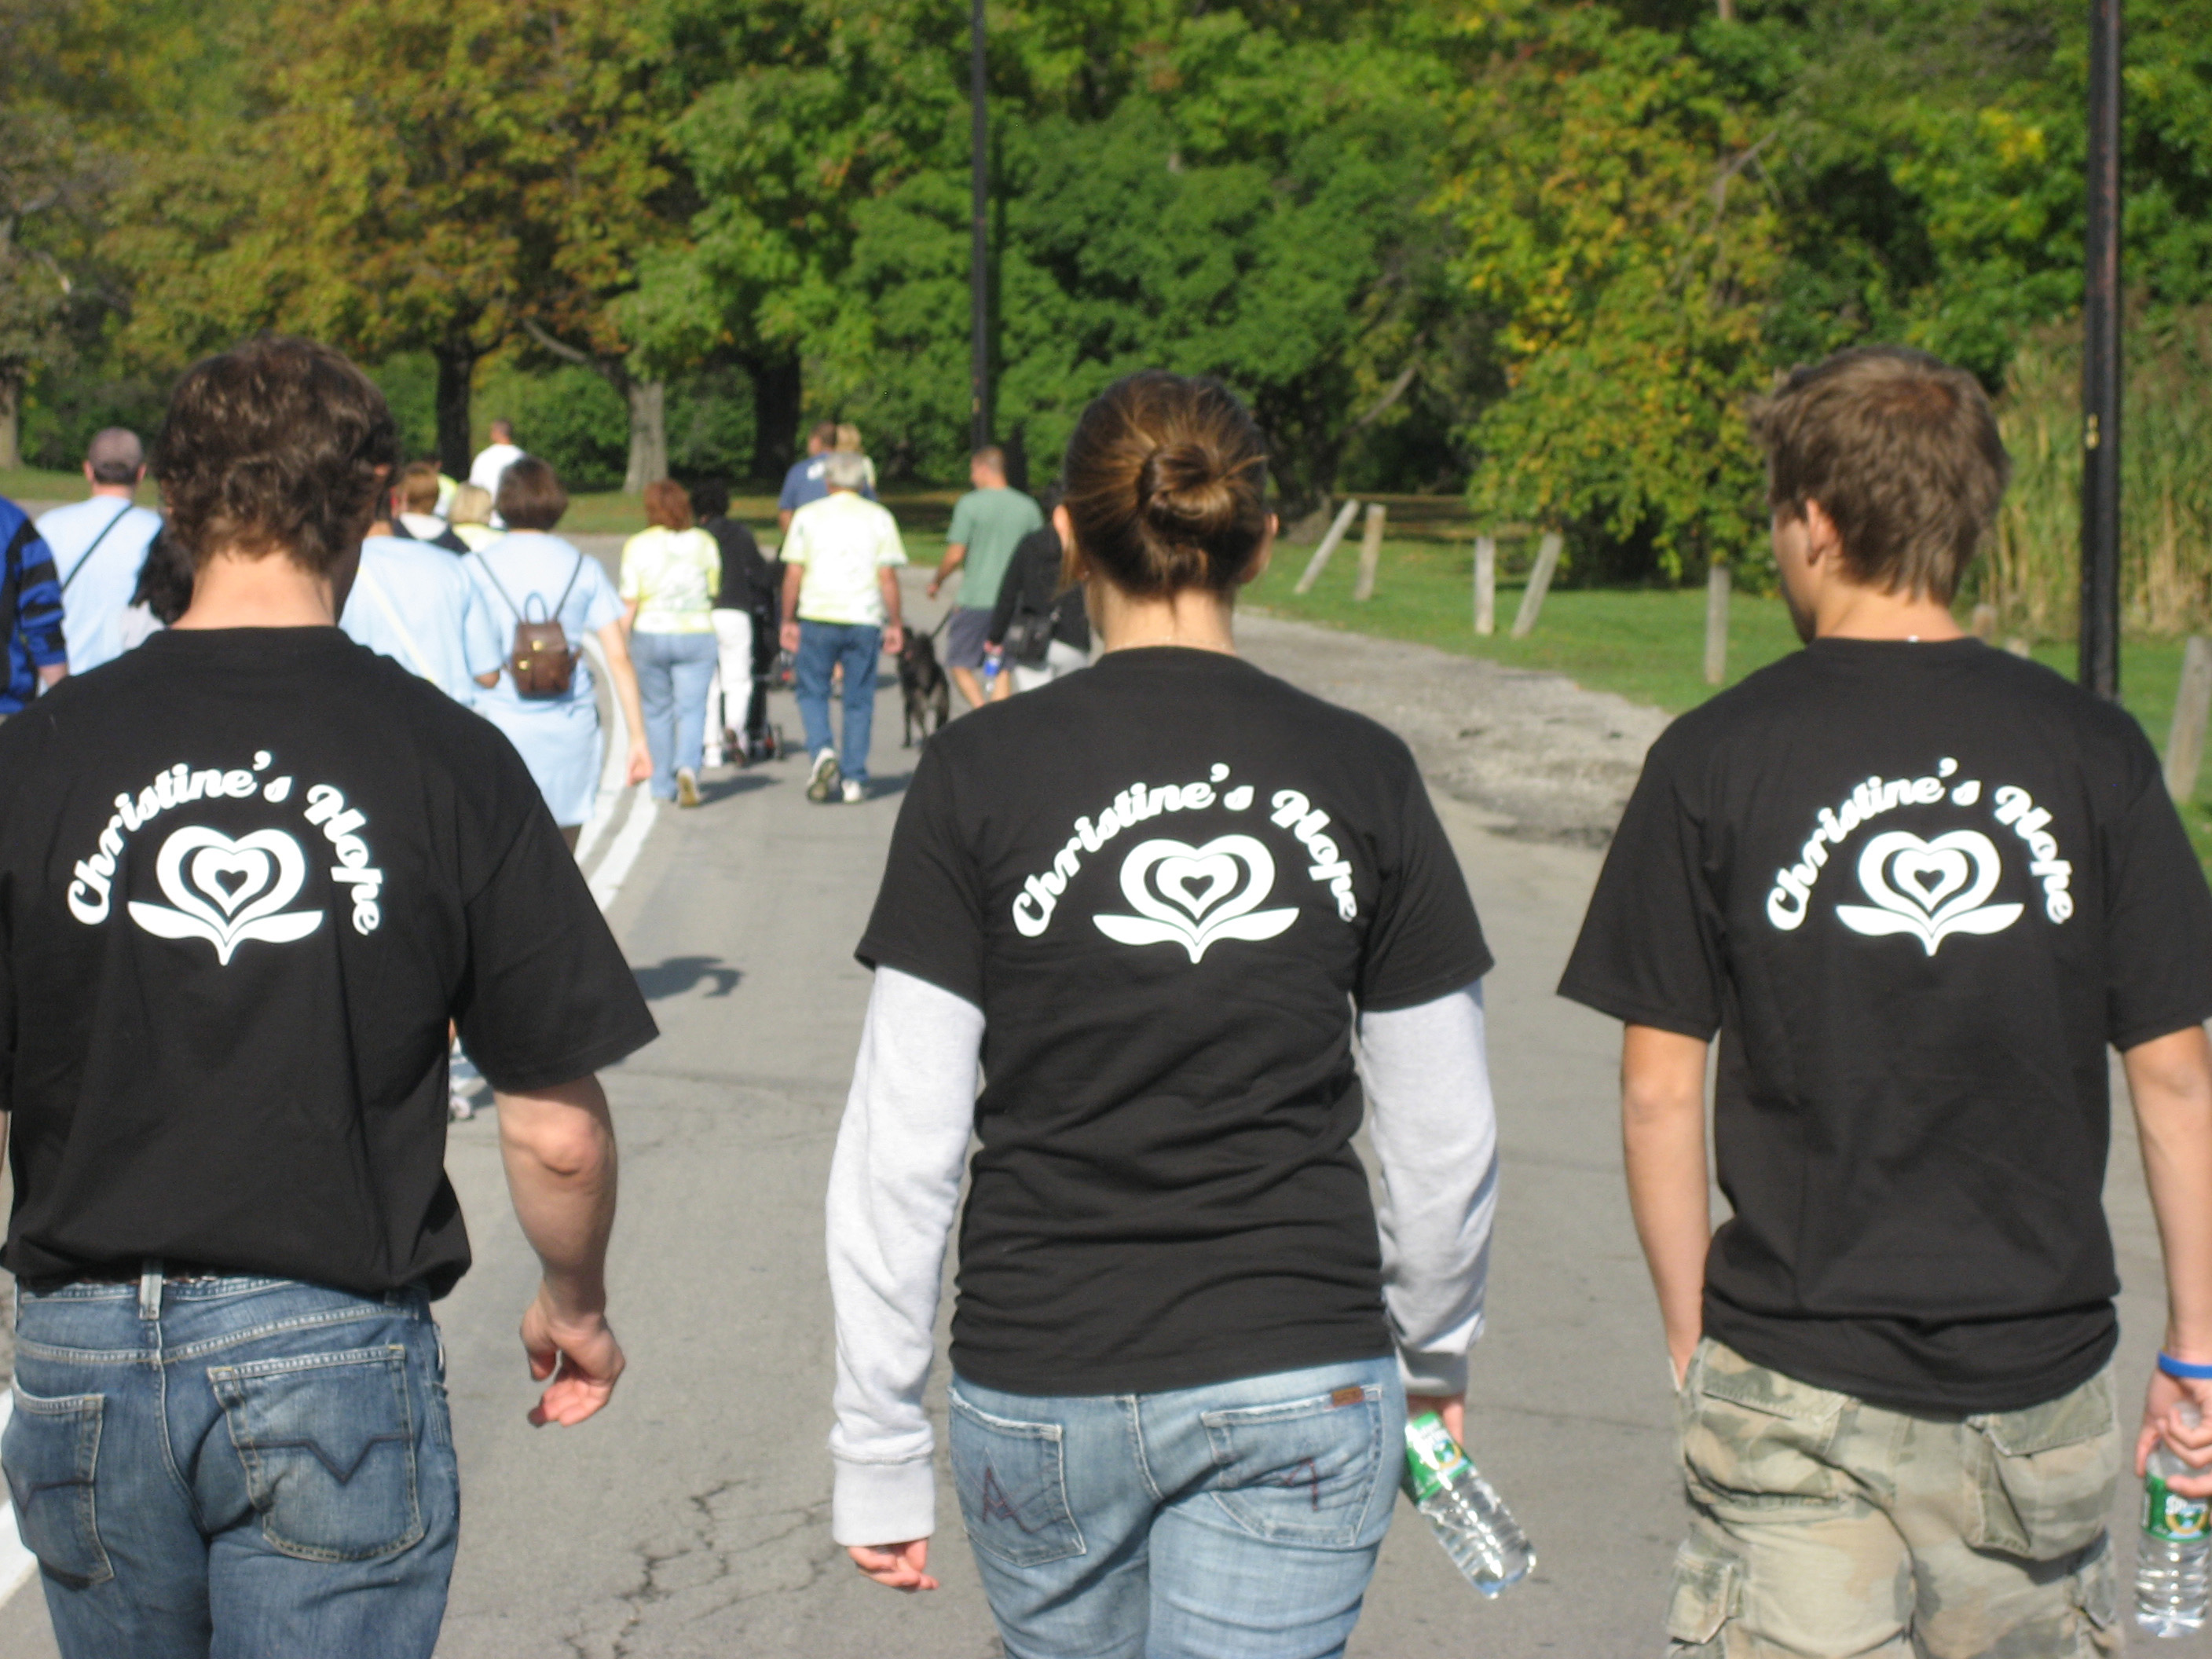 Custom t shirts for walk for suicide prevention shirt for Www custom t shirts